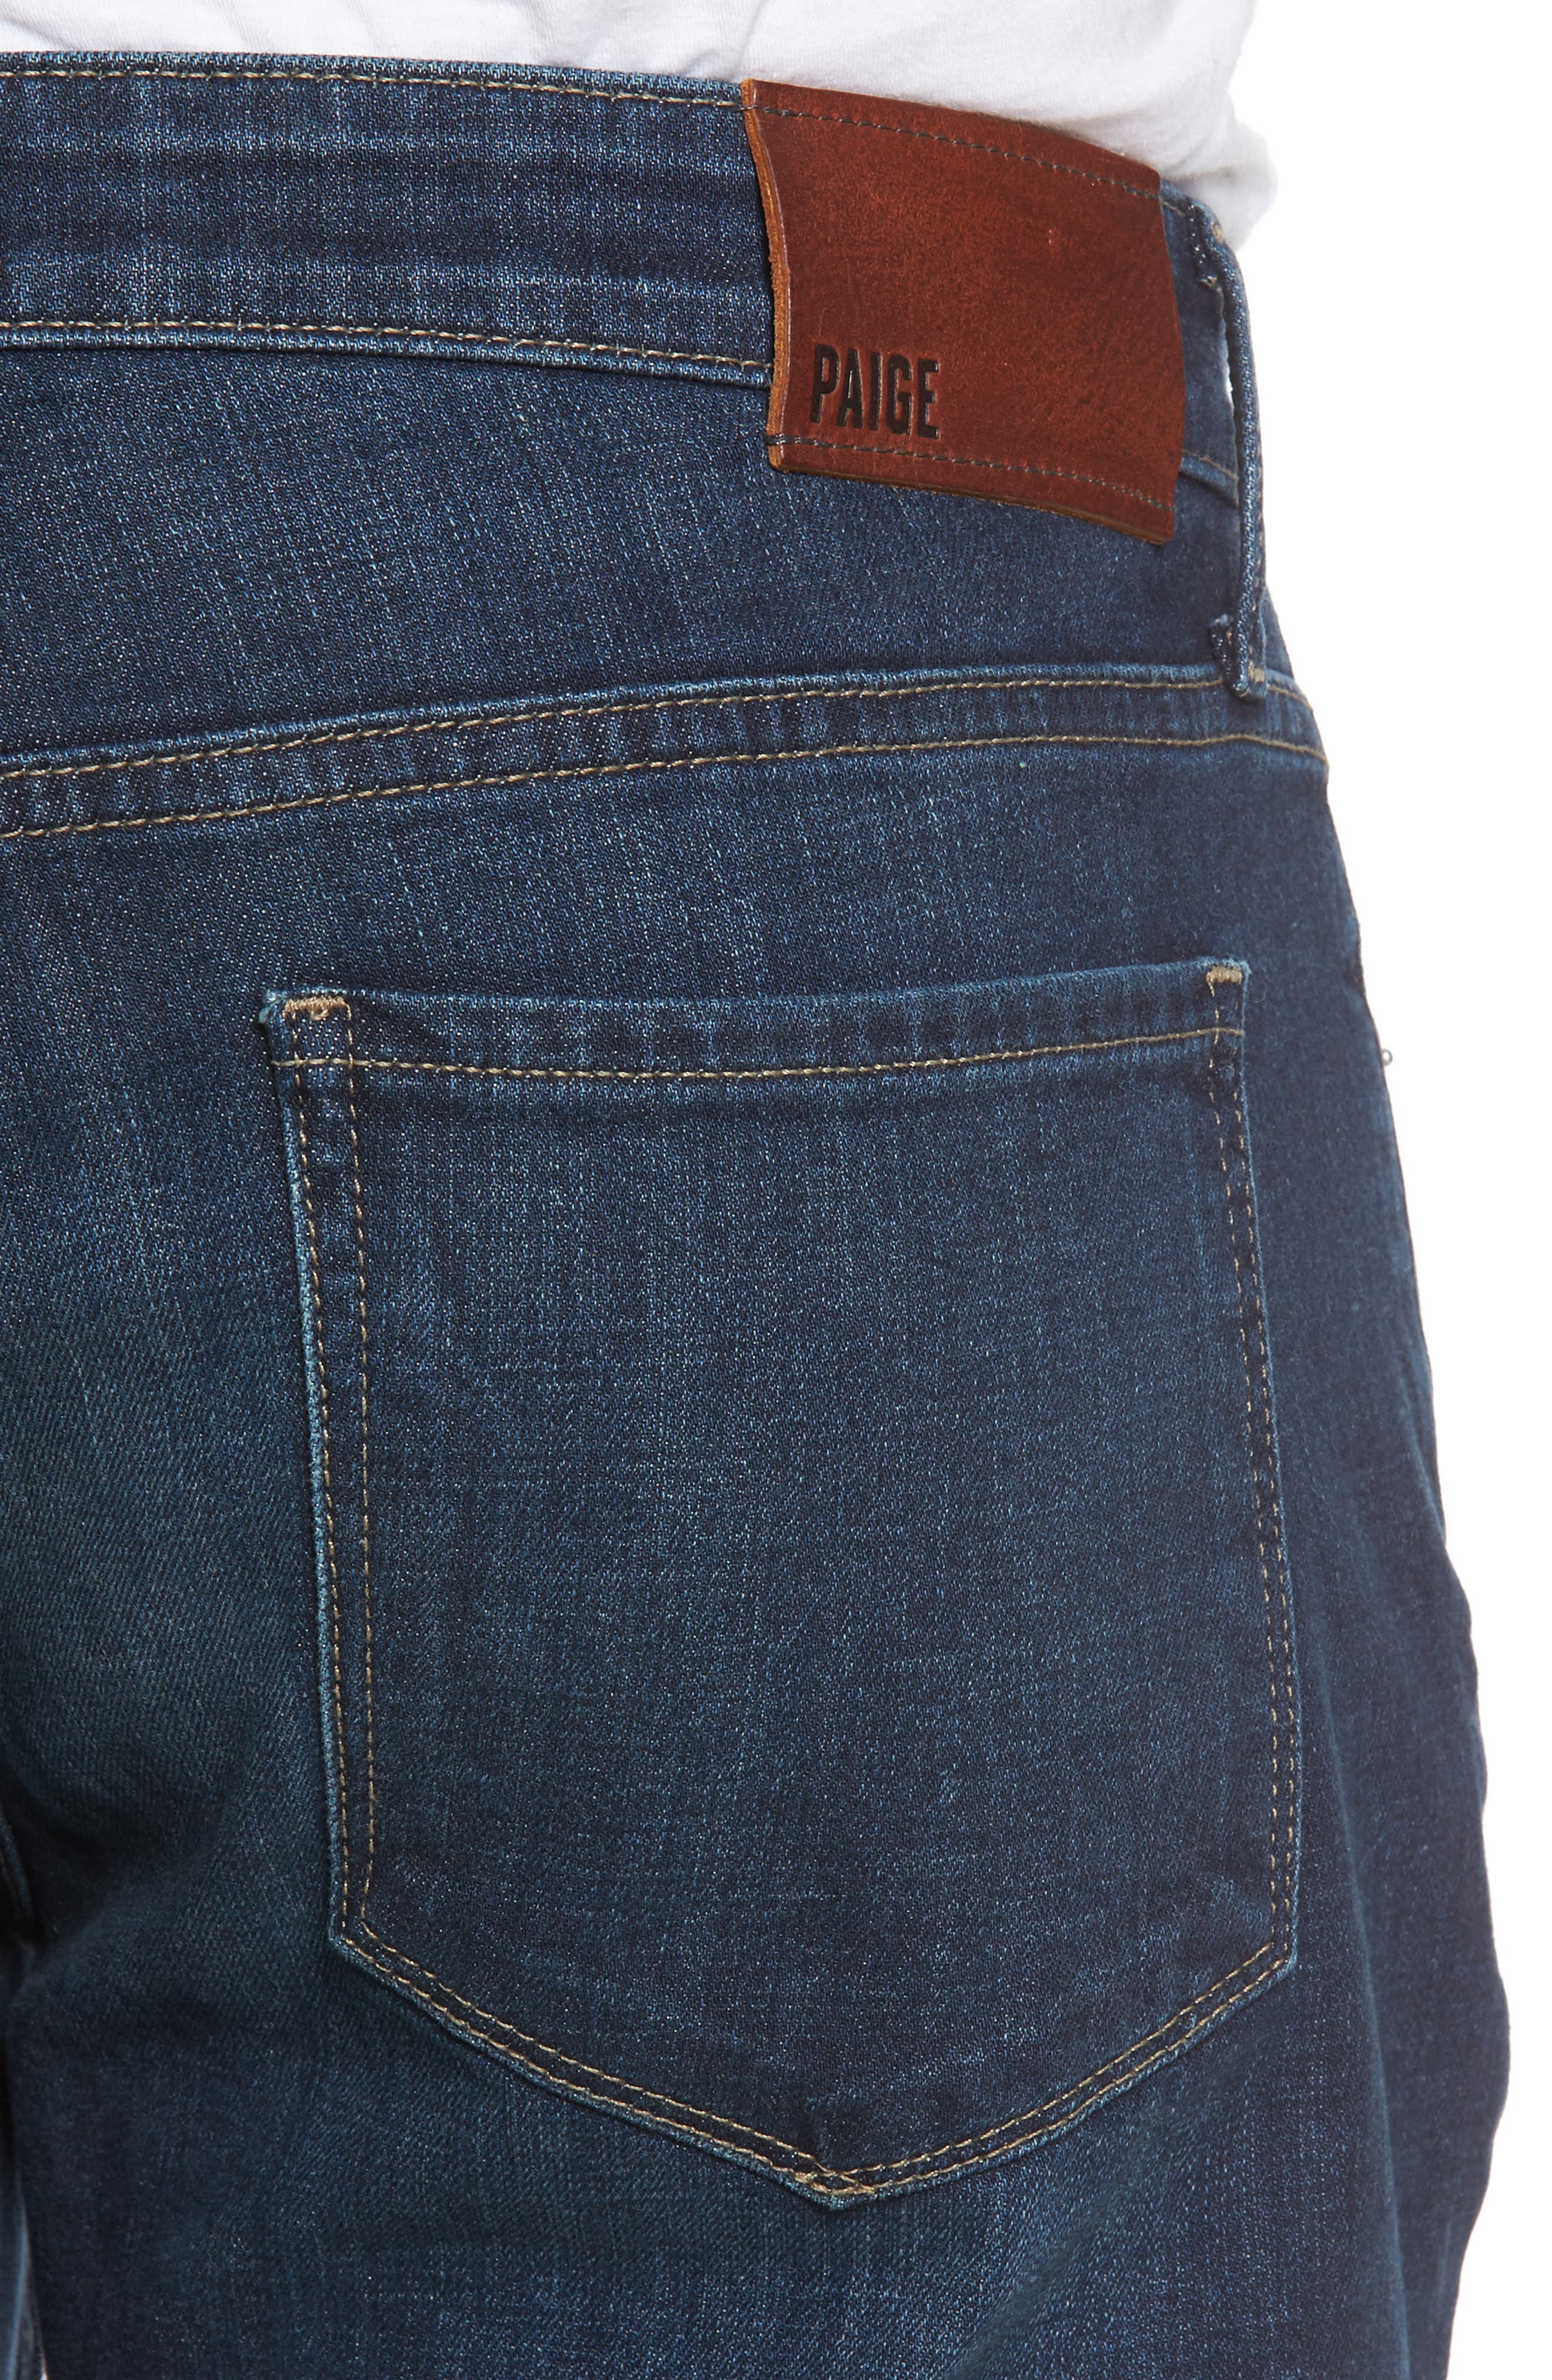 Federal Slim Straight Leg Jeans,                             Alternate thumbnail 4, color,                             400